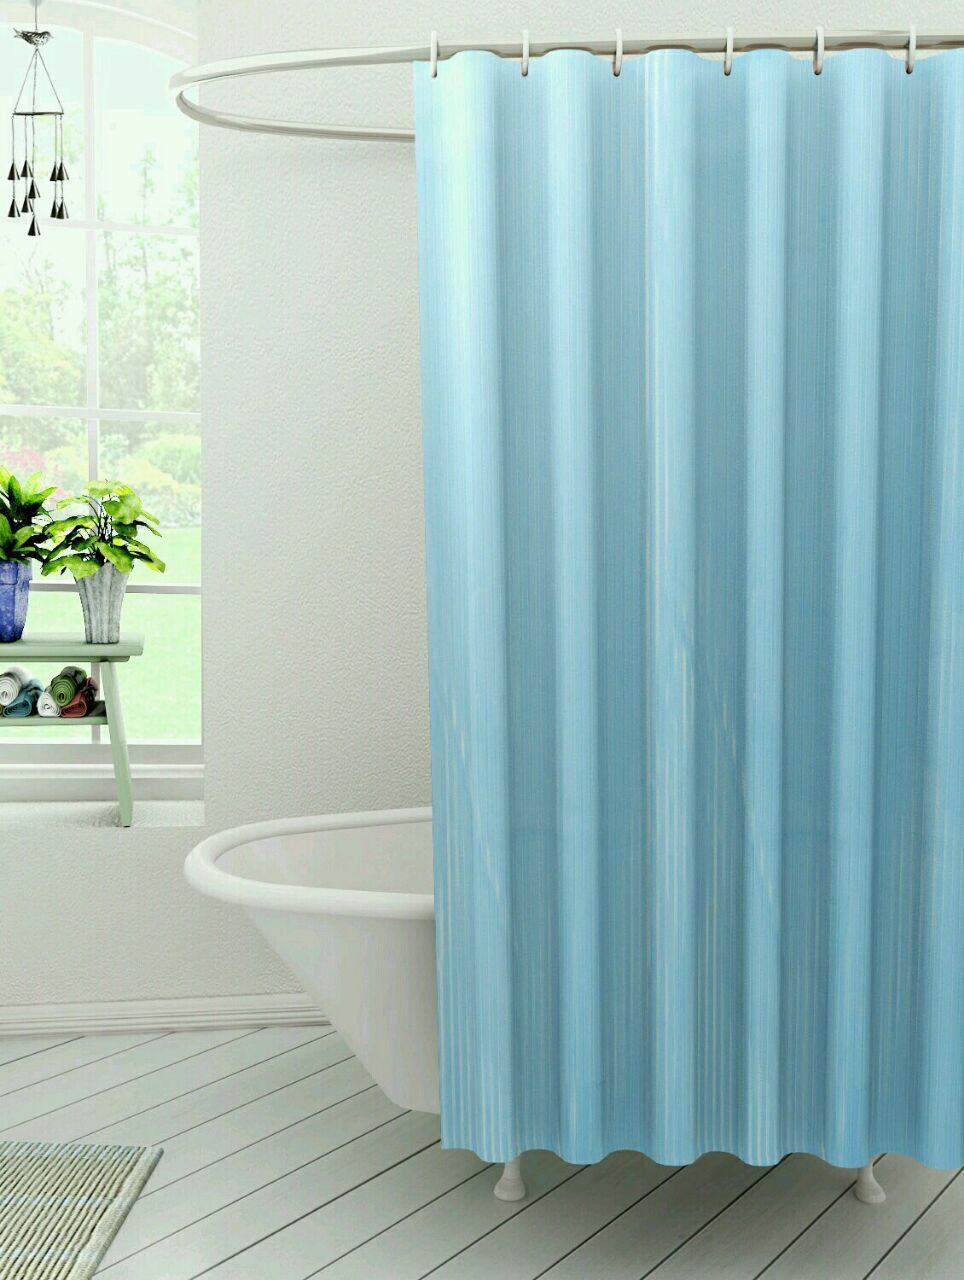 Kuber Industries™ Self Design PVC Premium Shower Curtain Set of 2 Pcs  - 7 Feet -84*54 Inches (Sky Blue) SHW08